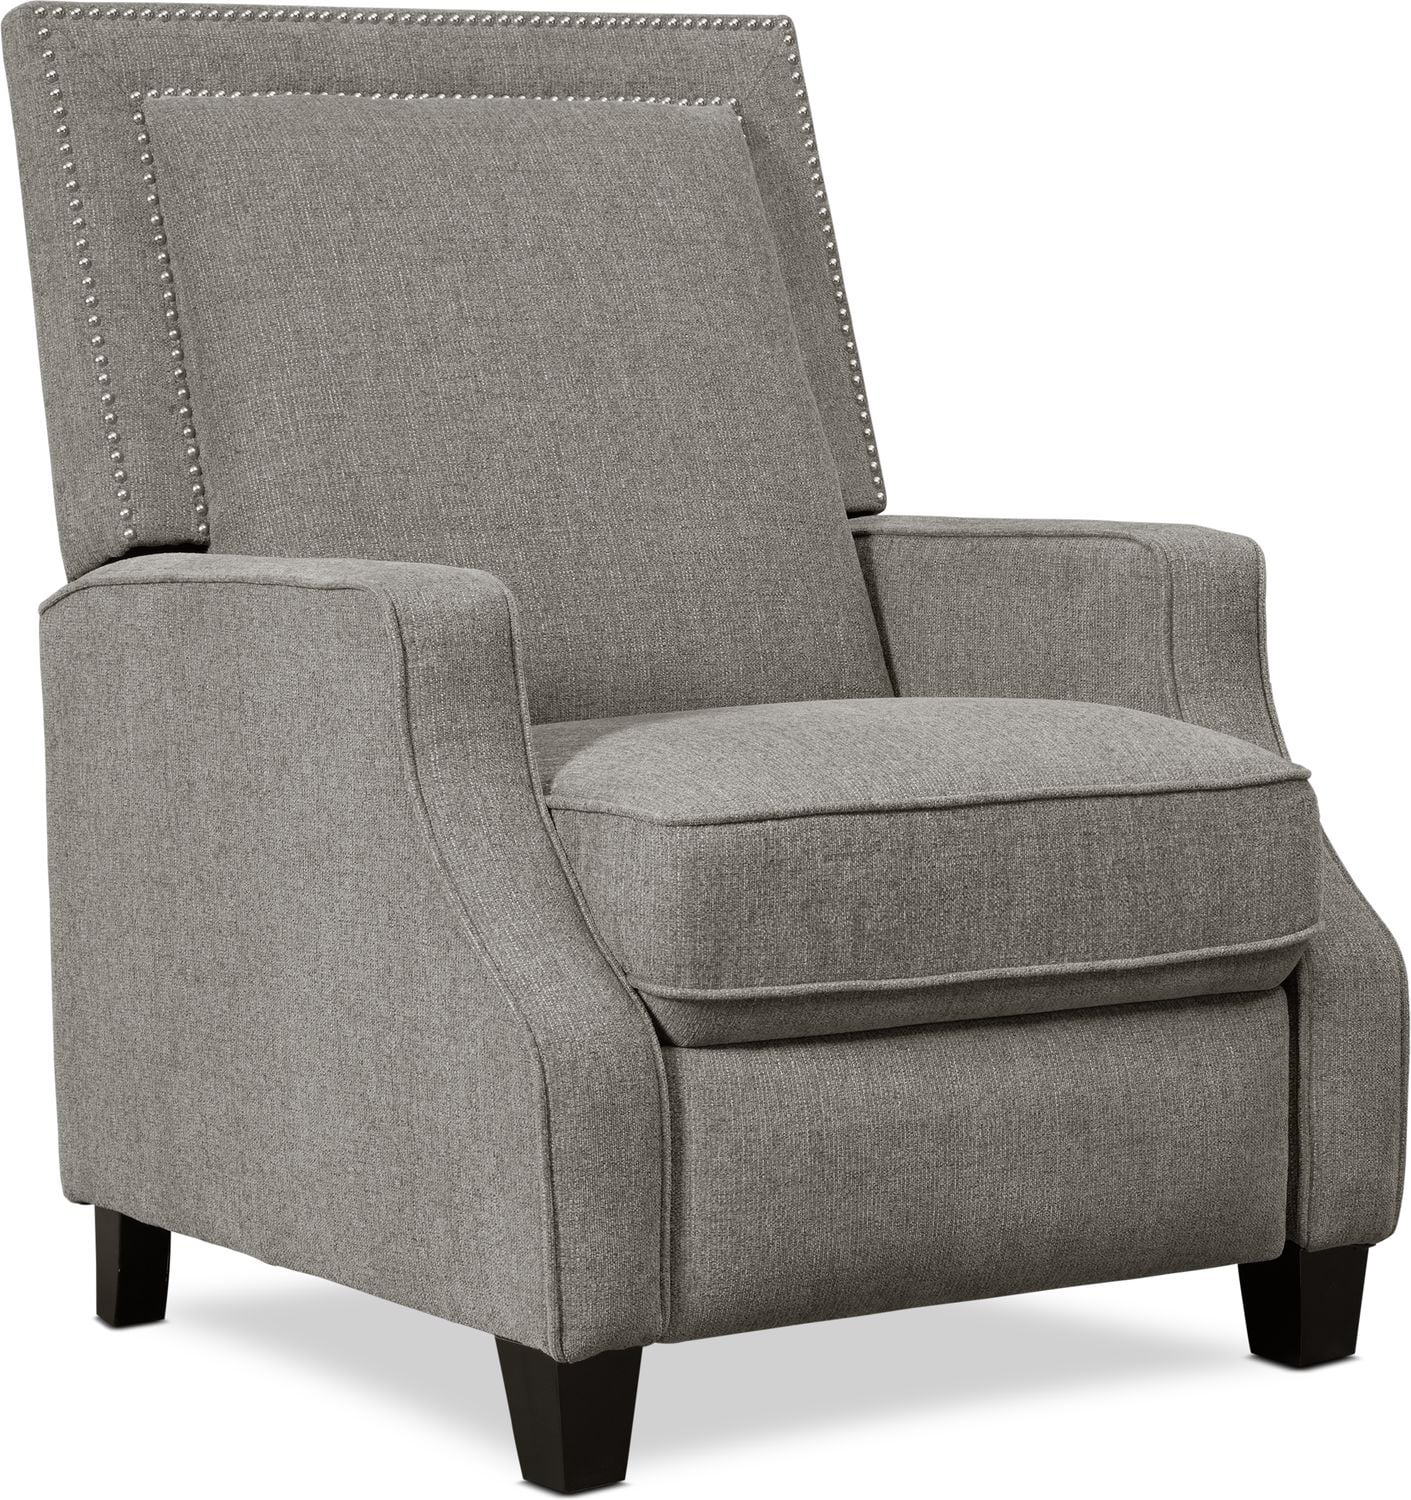 Living Room Furniture - Eliza Pushback Recliner